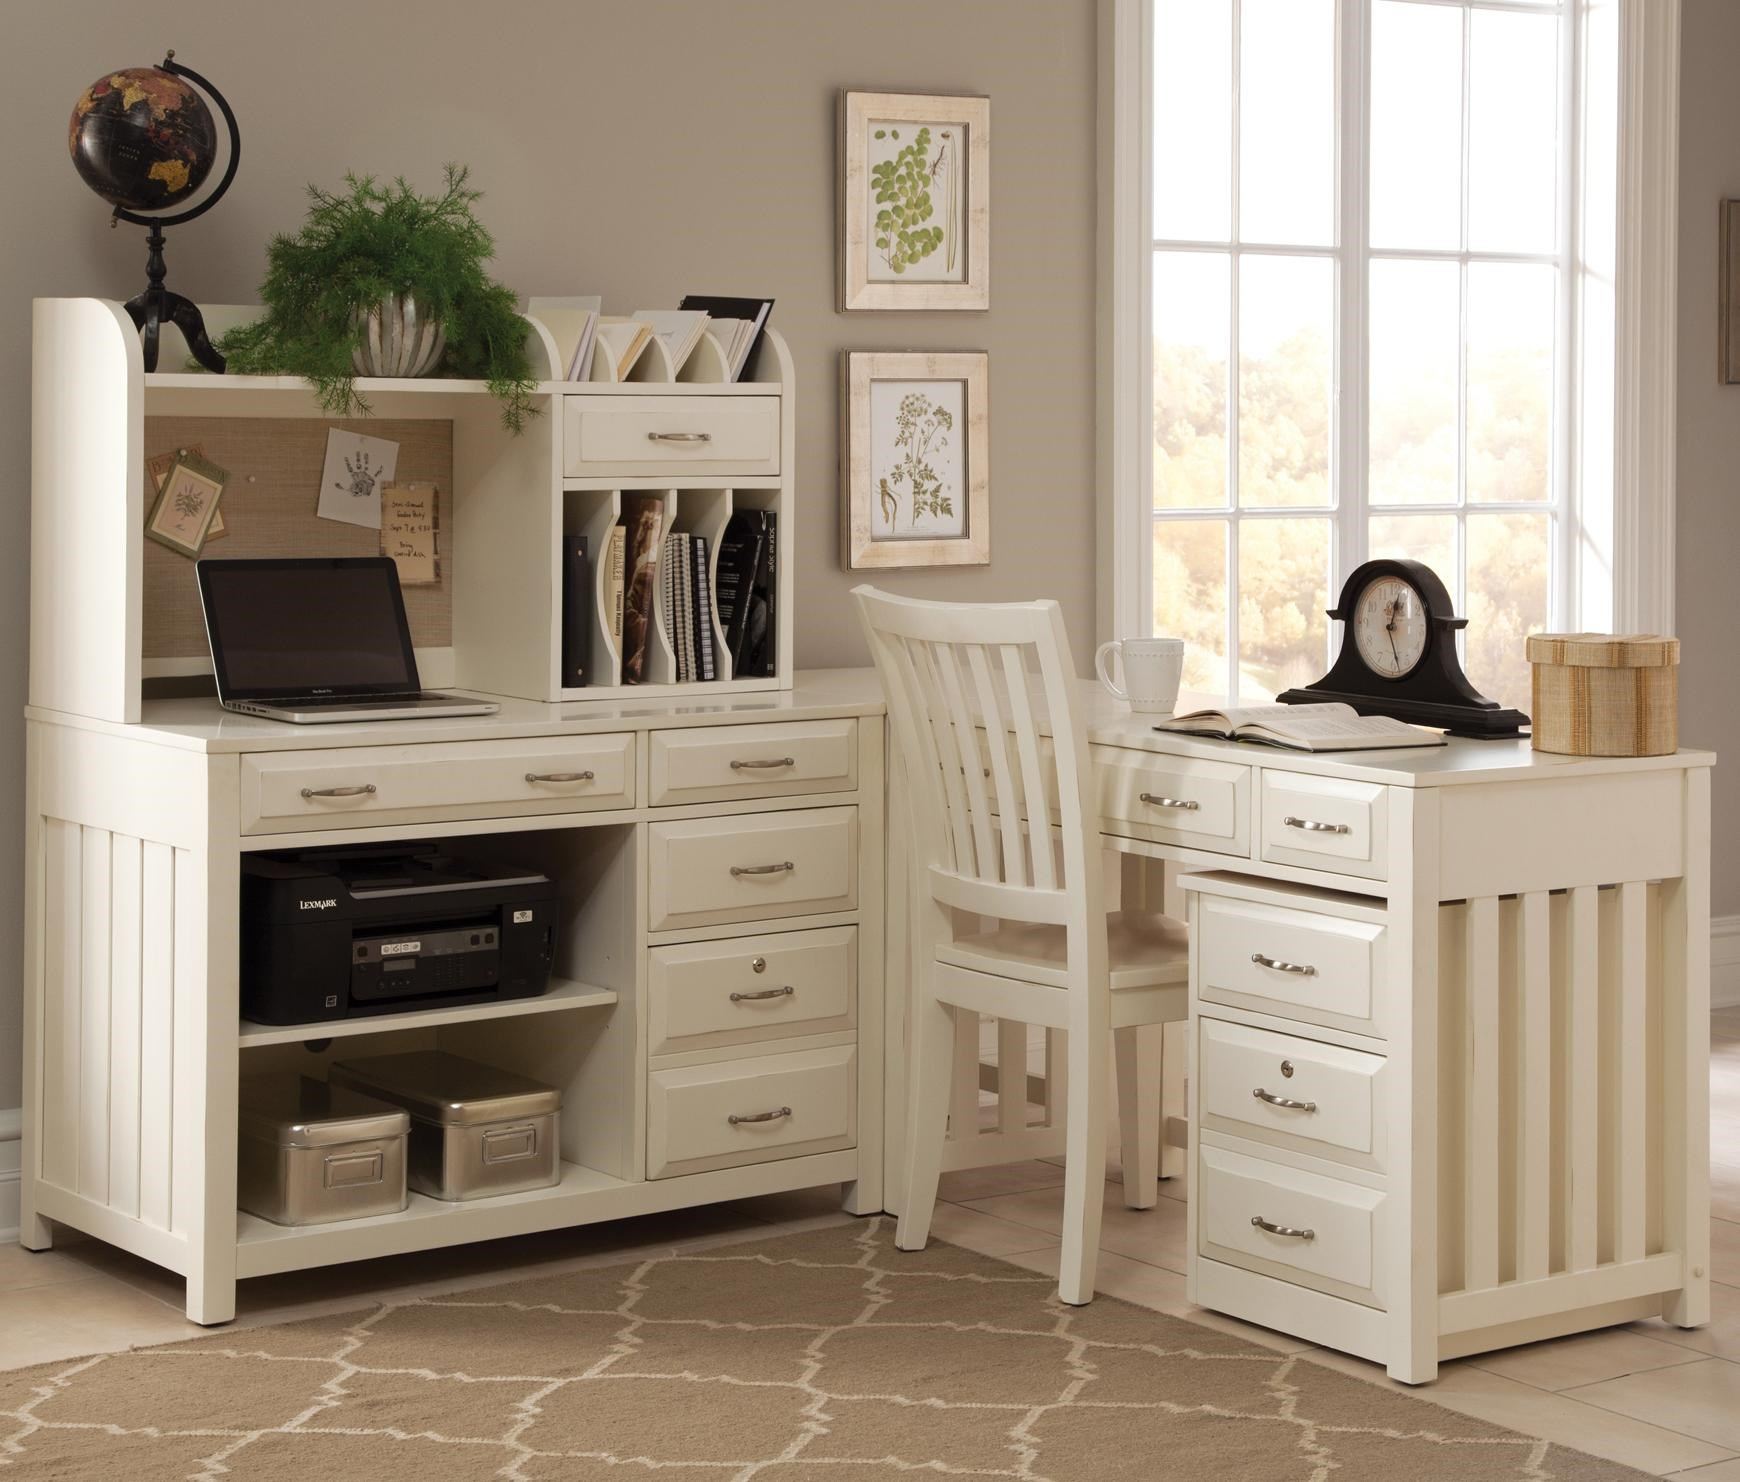 Desk With File Cabinet Hampton Bay White 5 Piece L Shaped Desk And File Cabinet Unit By Vendor 5349 At Becker Furniture World